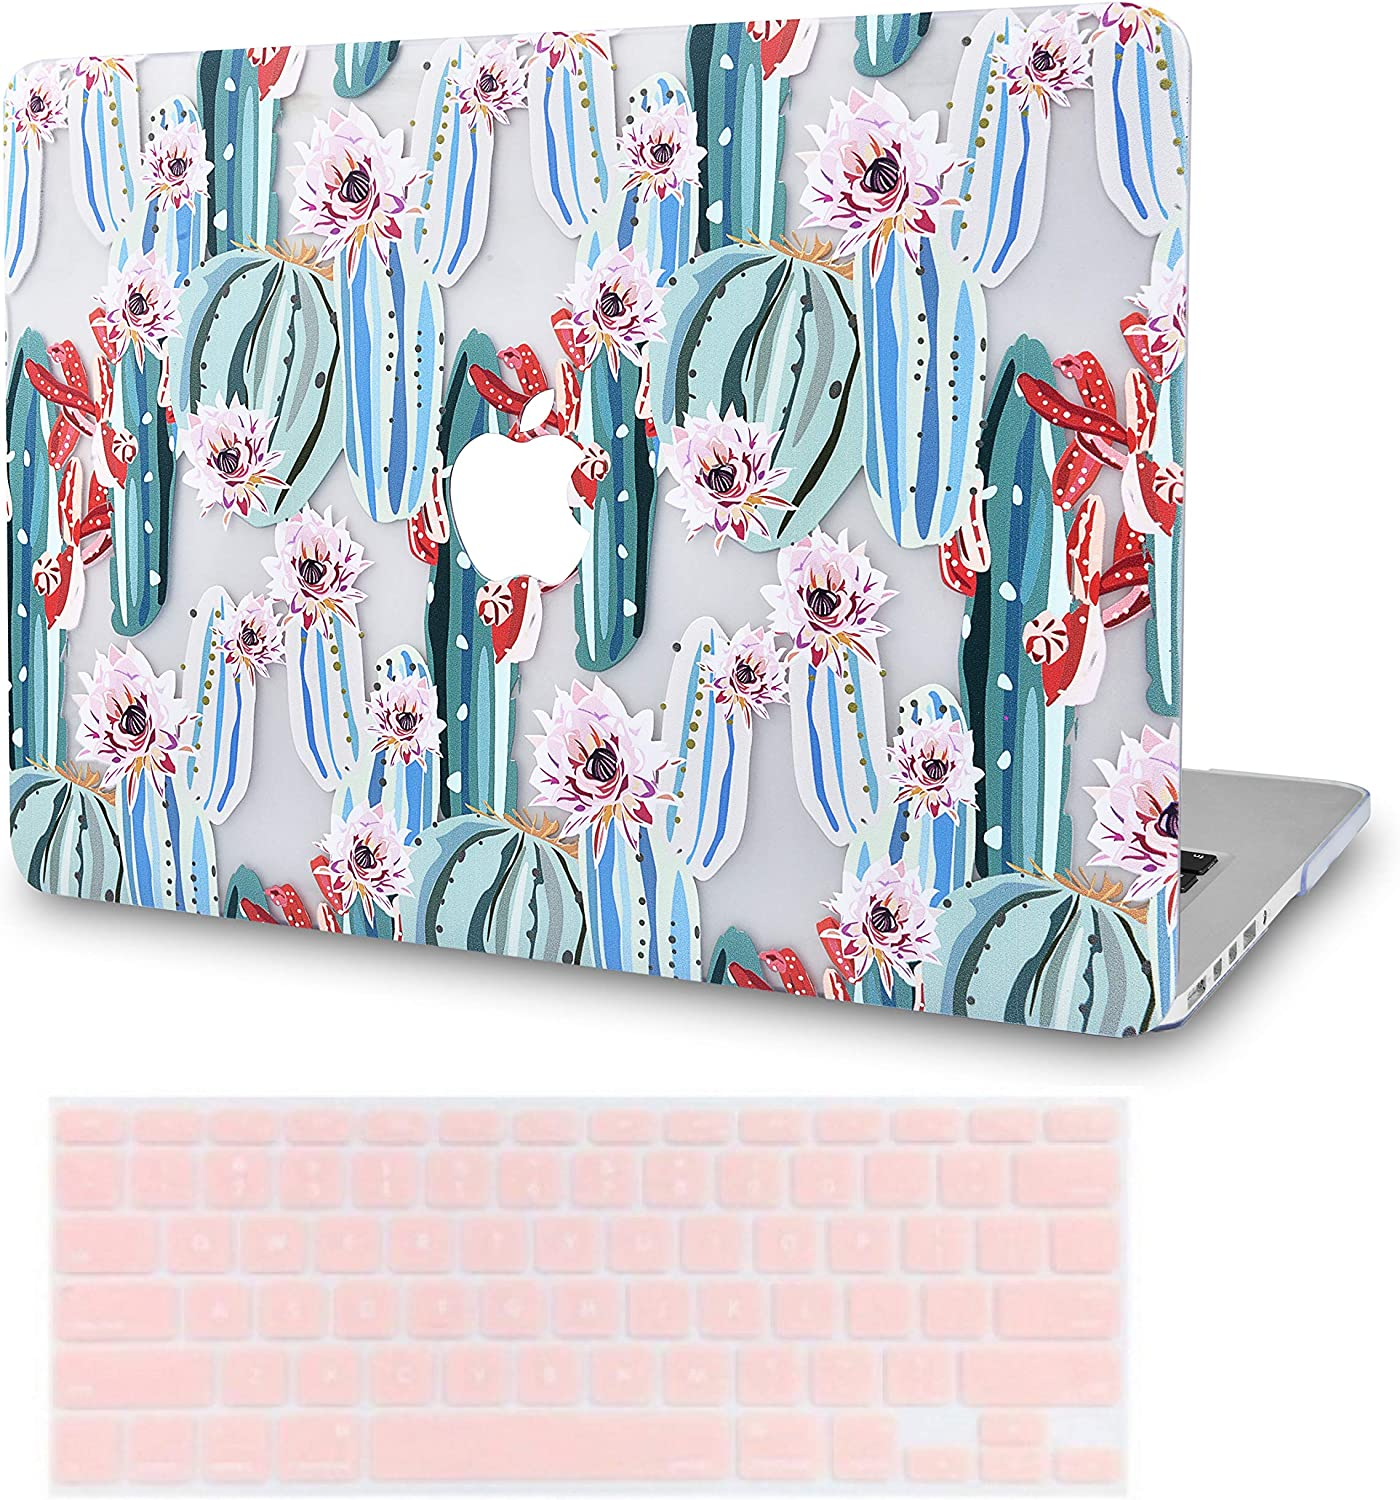 """KECC Laptop Case for MacBook Air 13"""" w/Keyboard Cover Plastic Hard Shell Case A1466/A1369 2 in 1 Bundle (Cactus 1)"""